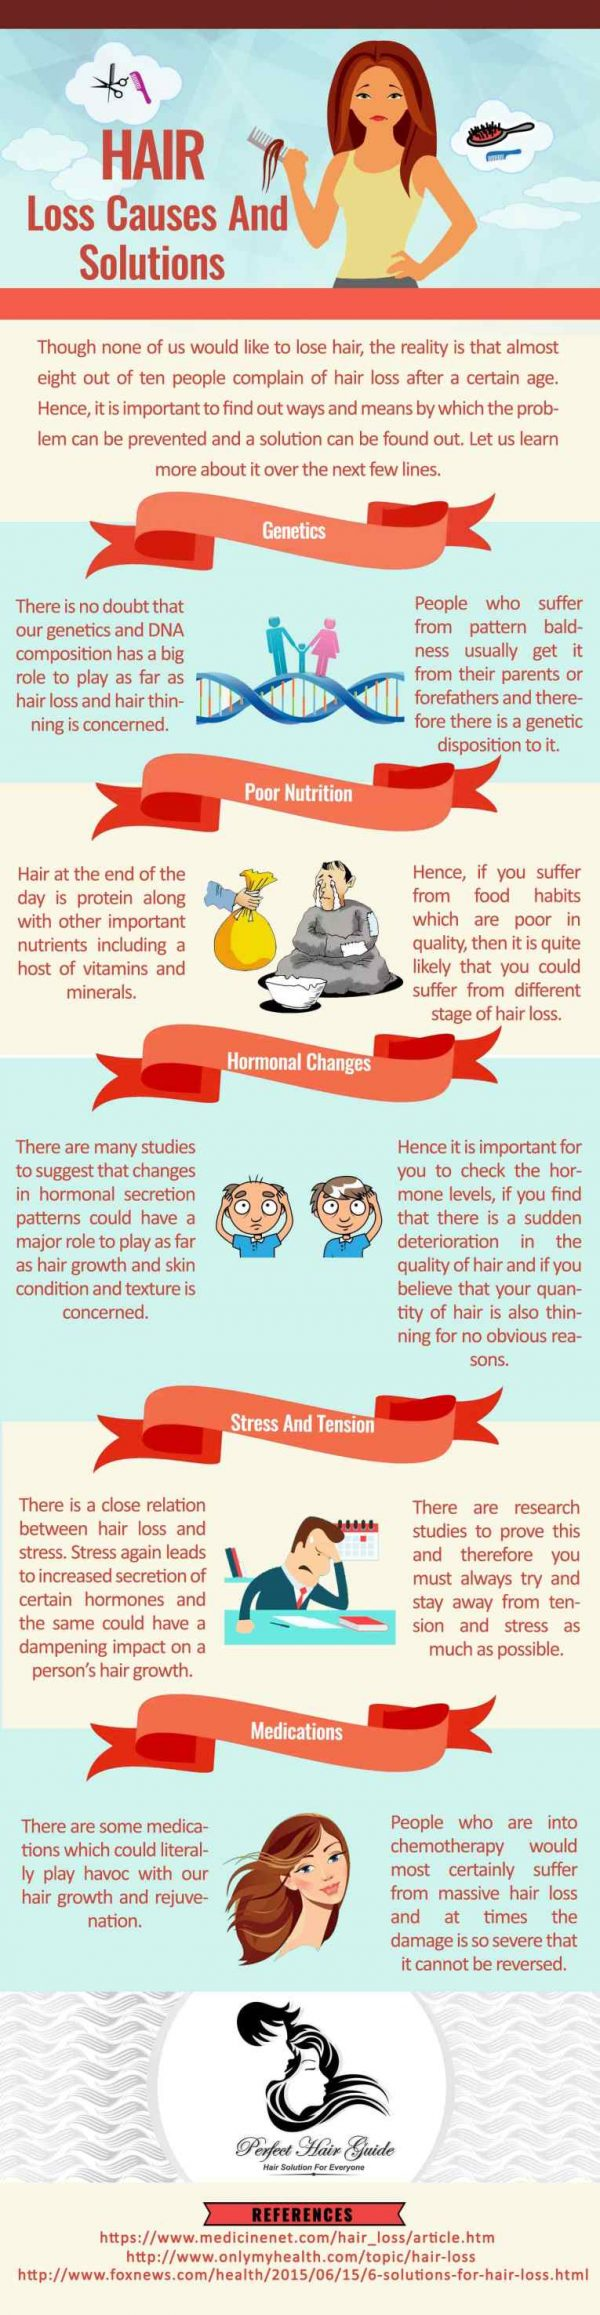 Hair Loss Causes And Solutions #infographic